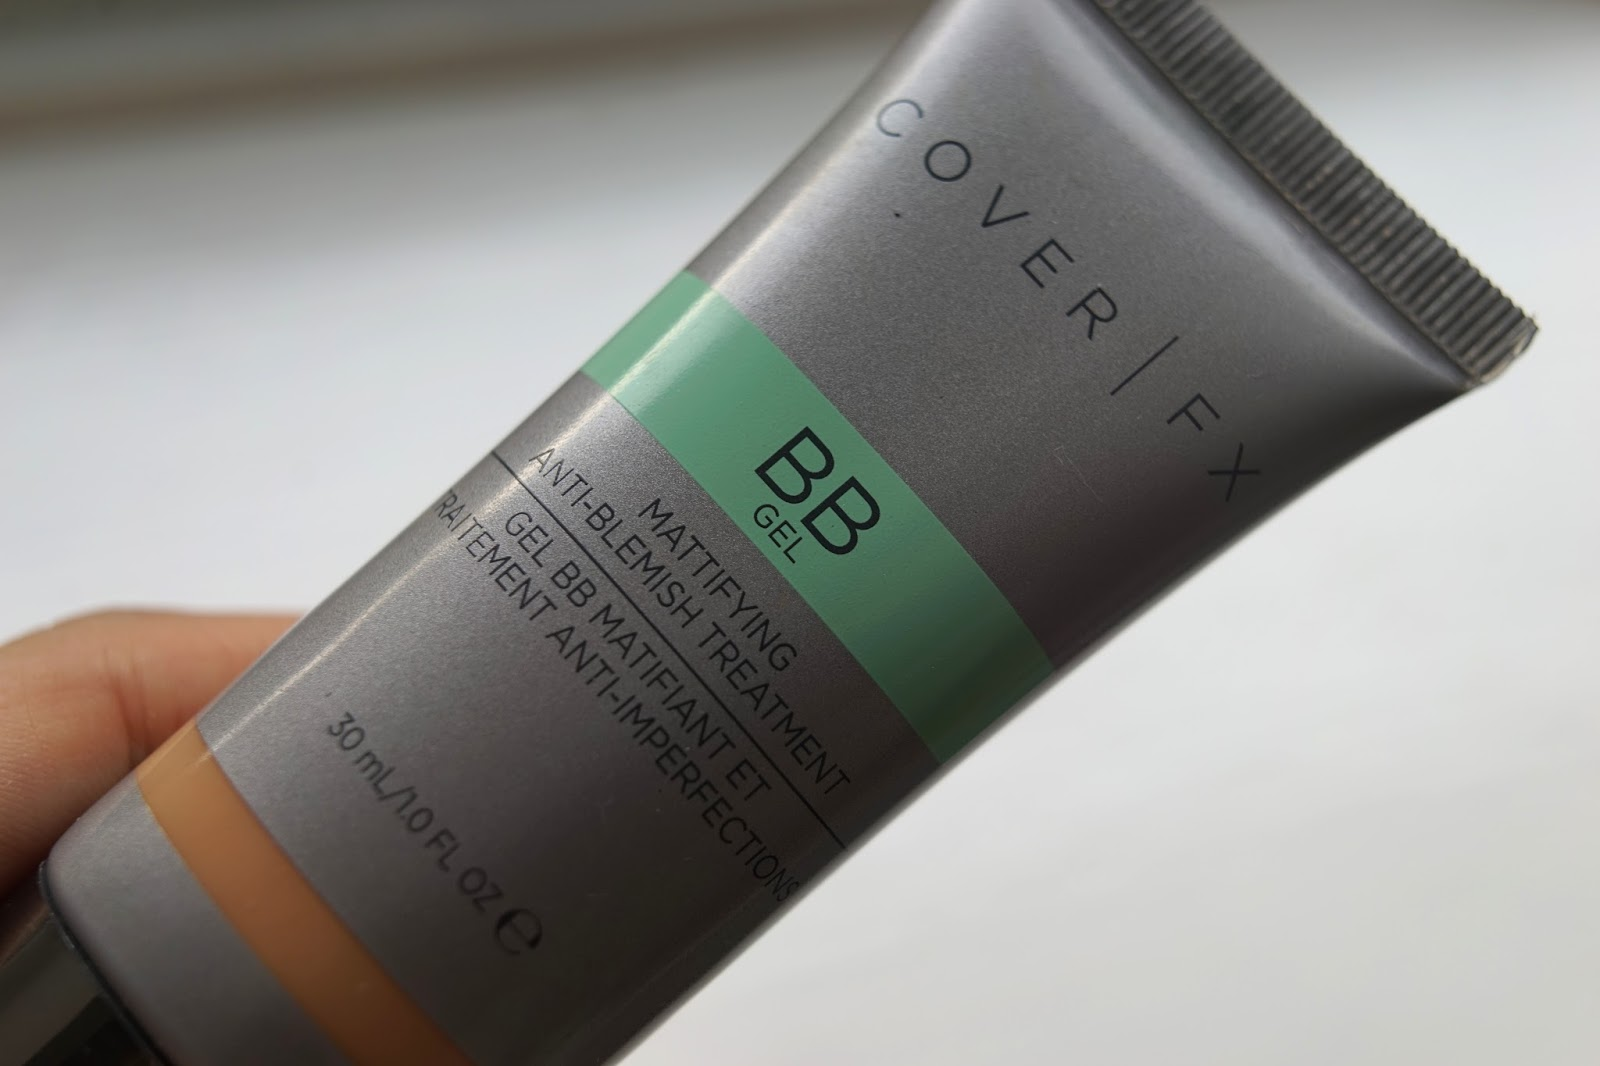 cover fx anti-blemish bb gel